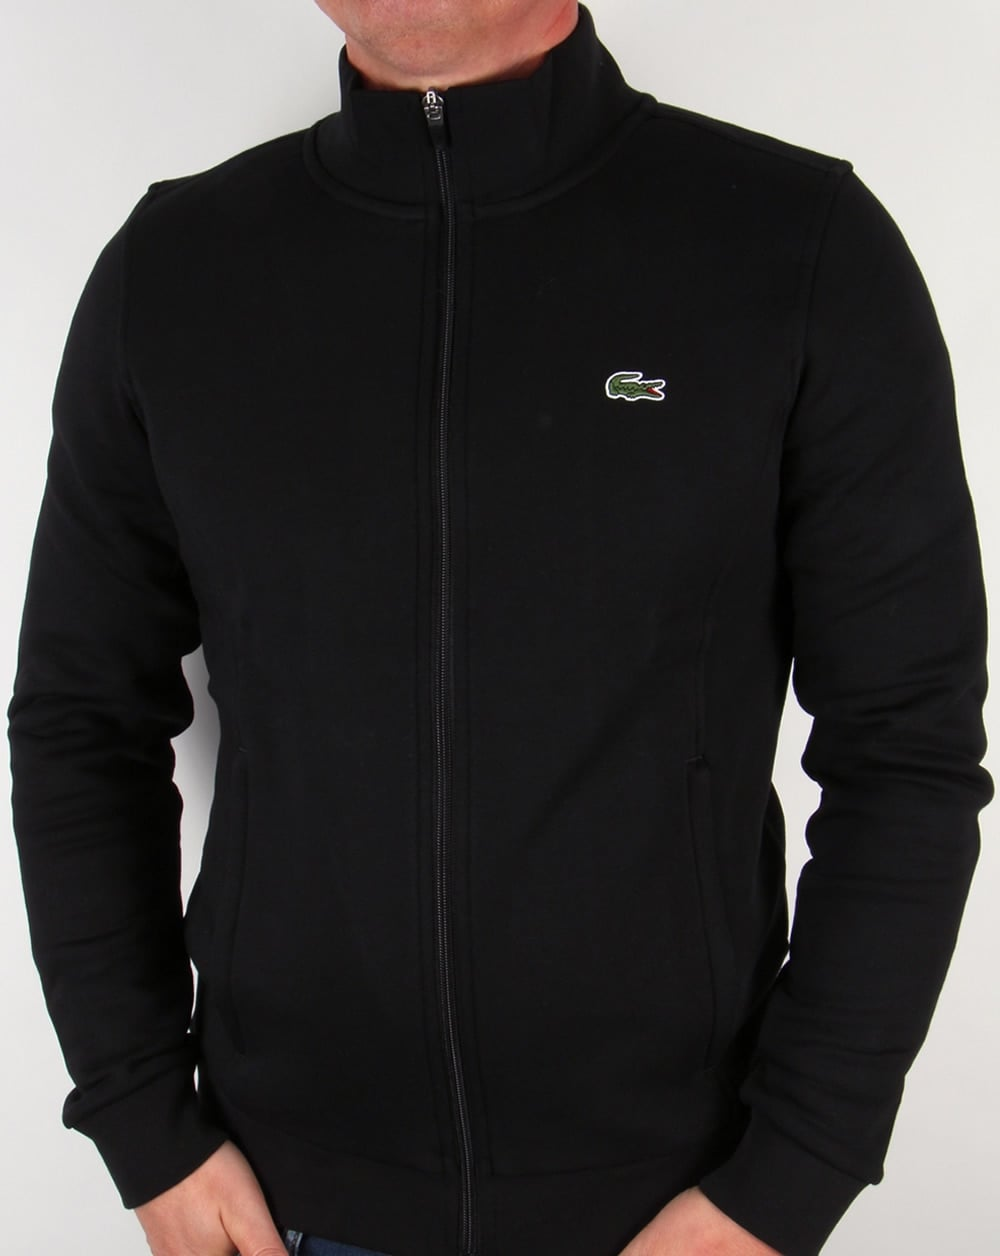 3fe401b5f Lacoste Lacoste Zip Up Track Top Black